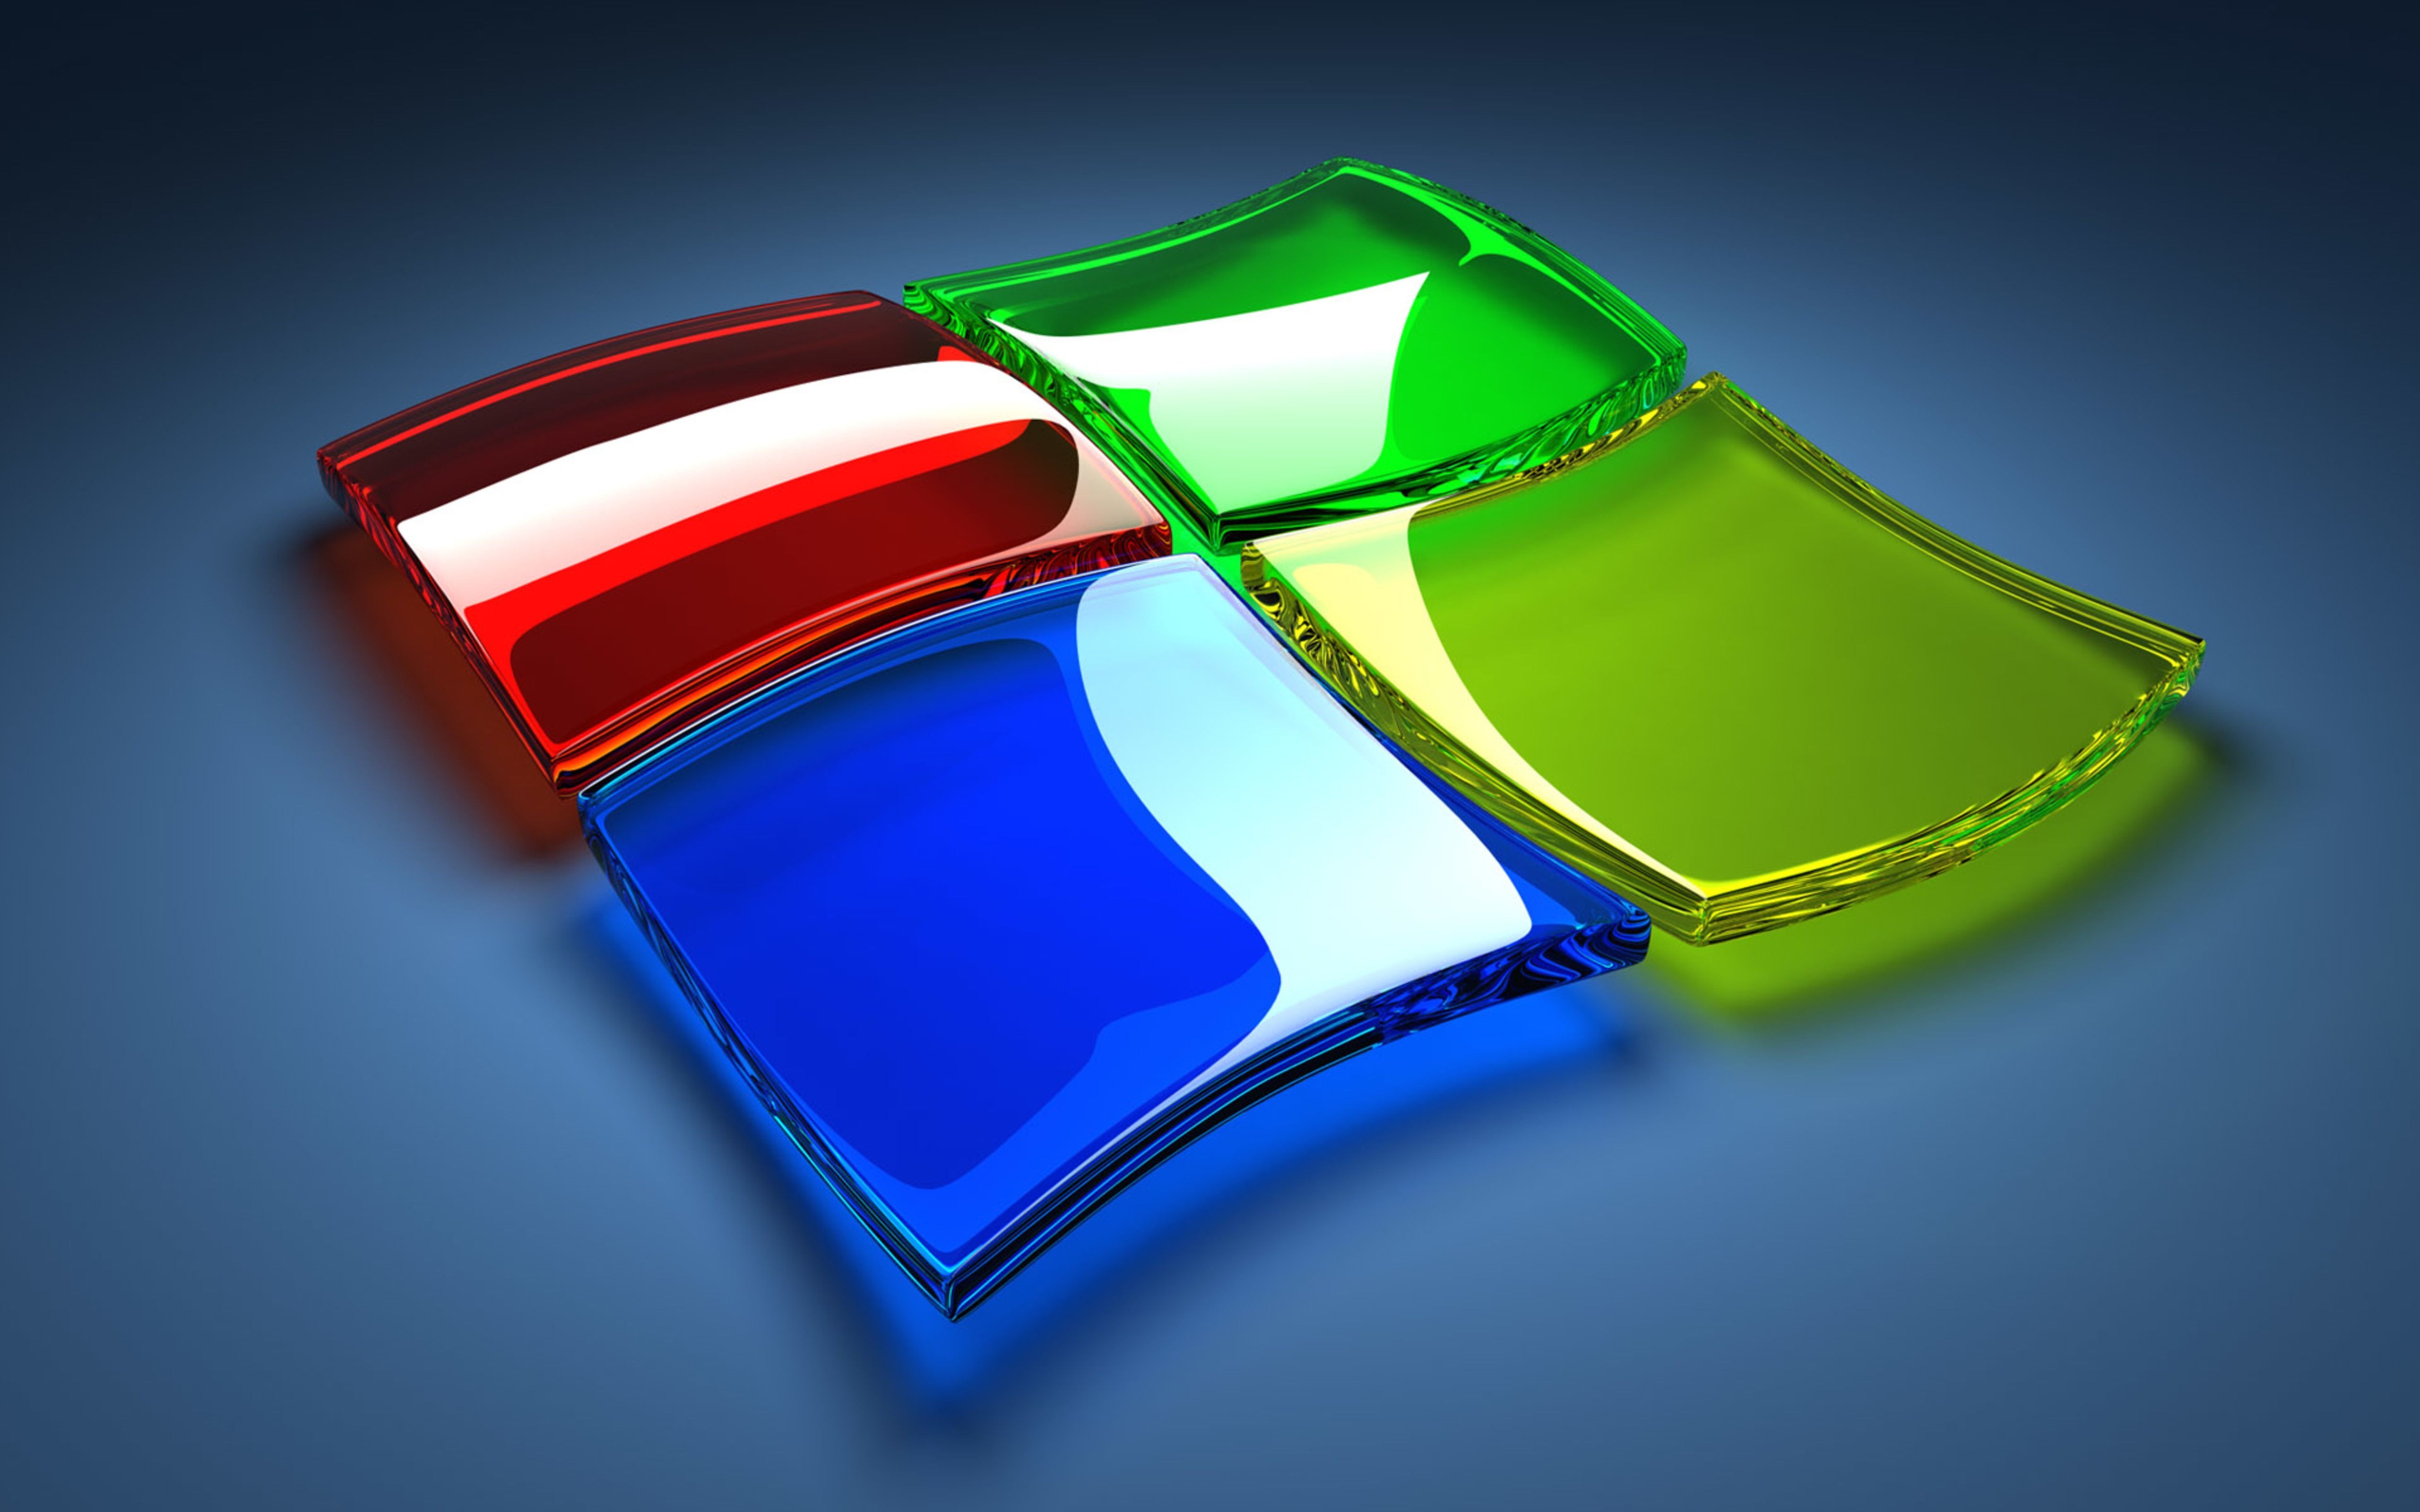 Wallpaper Download 5120x3200 Windows 7 logo 3D Wallpaper